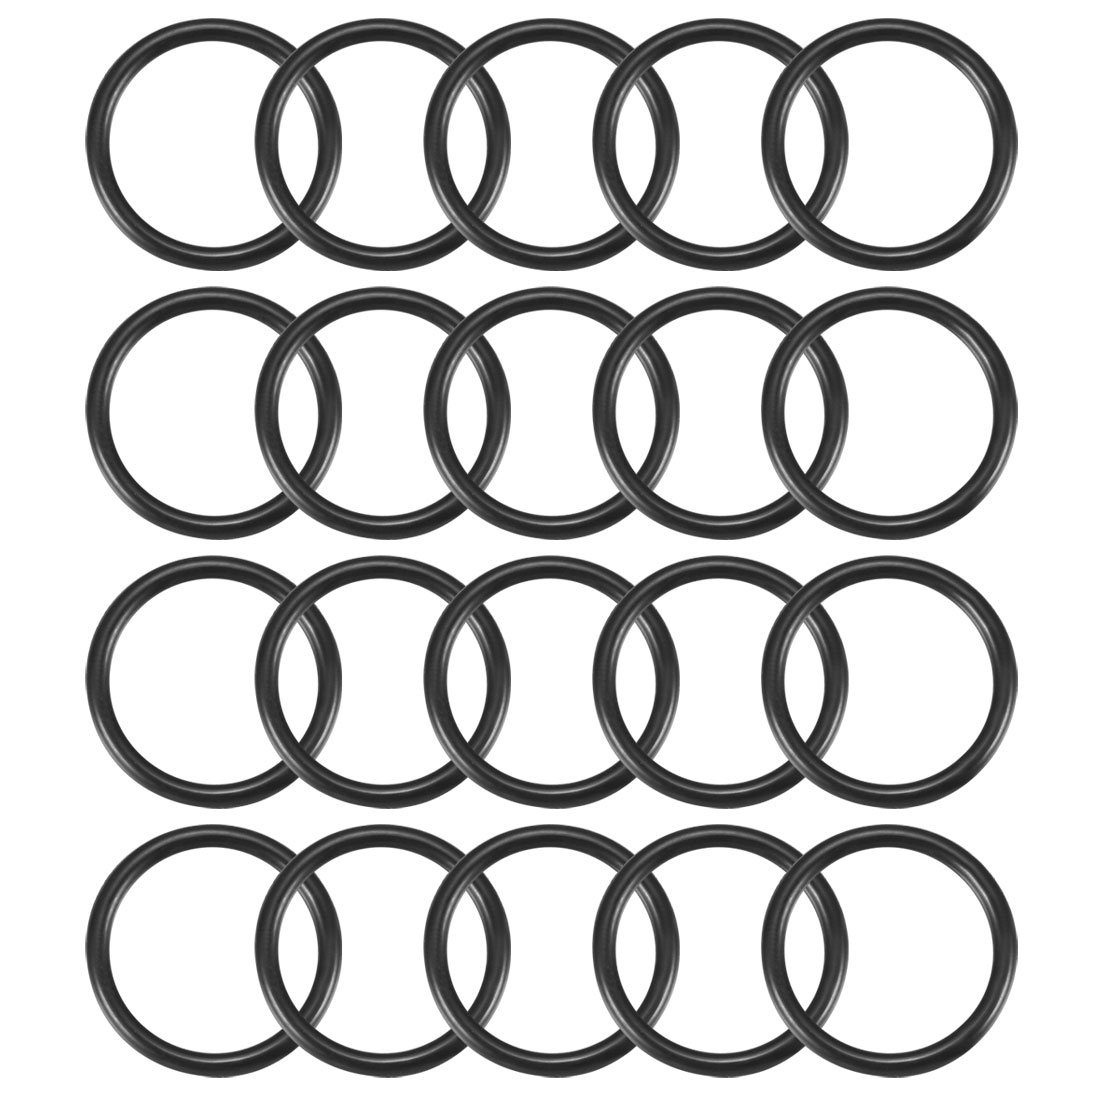 20pcs Black 20mm Outer Dia 1.9mm Thickness Sealing Ring O-shape Rubber Grommet